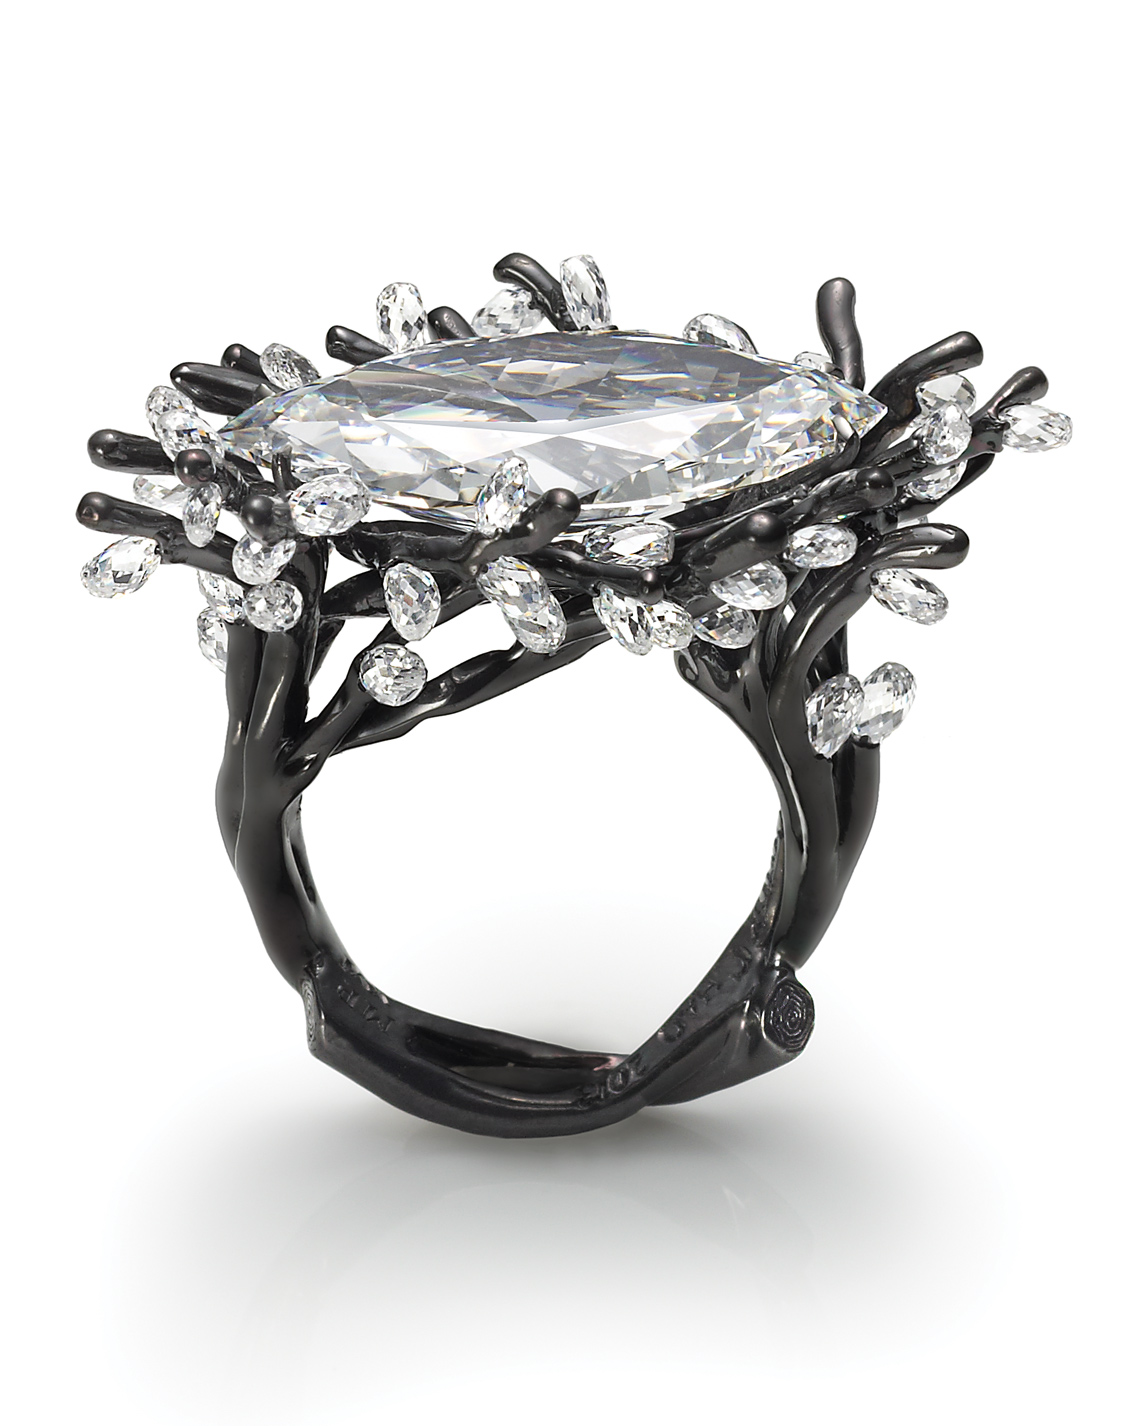 NEW-FINAL_Marquis-Diamond-Ring.jpg